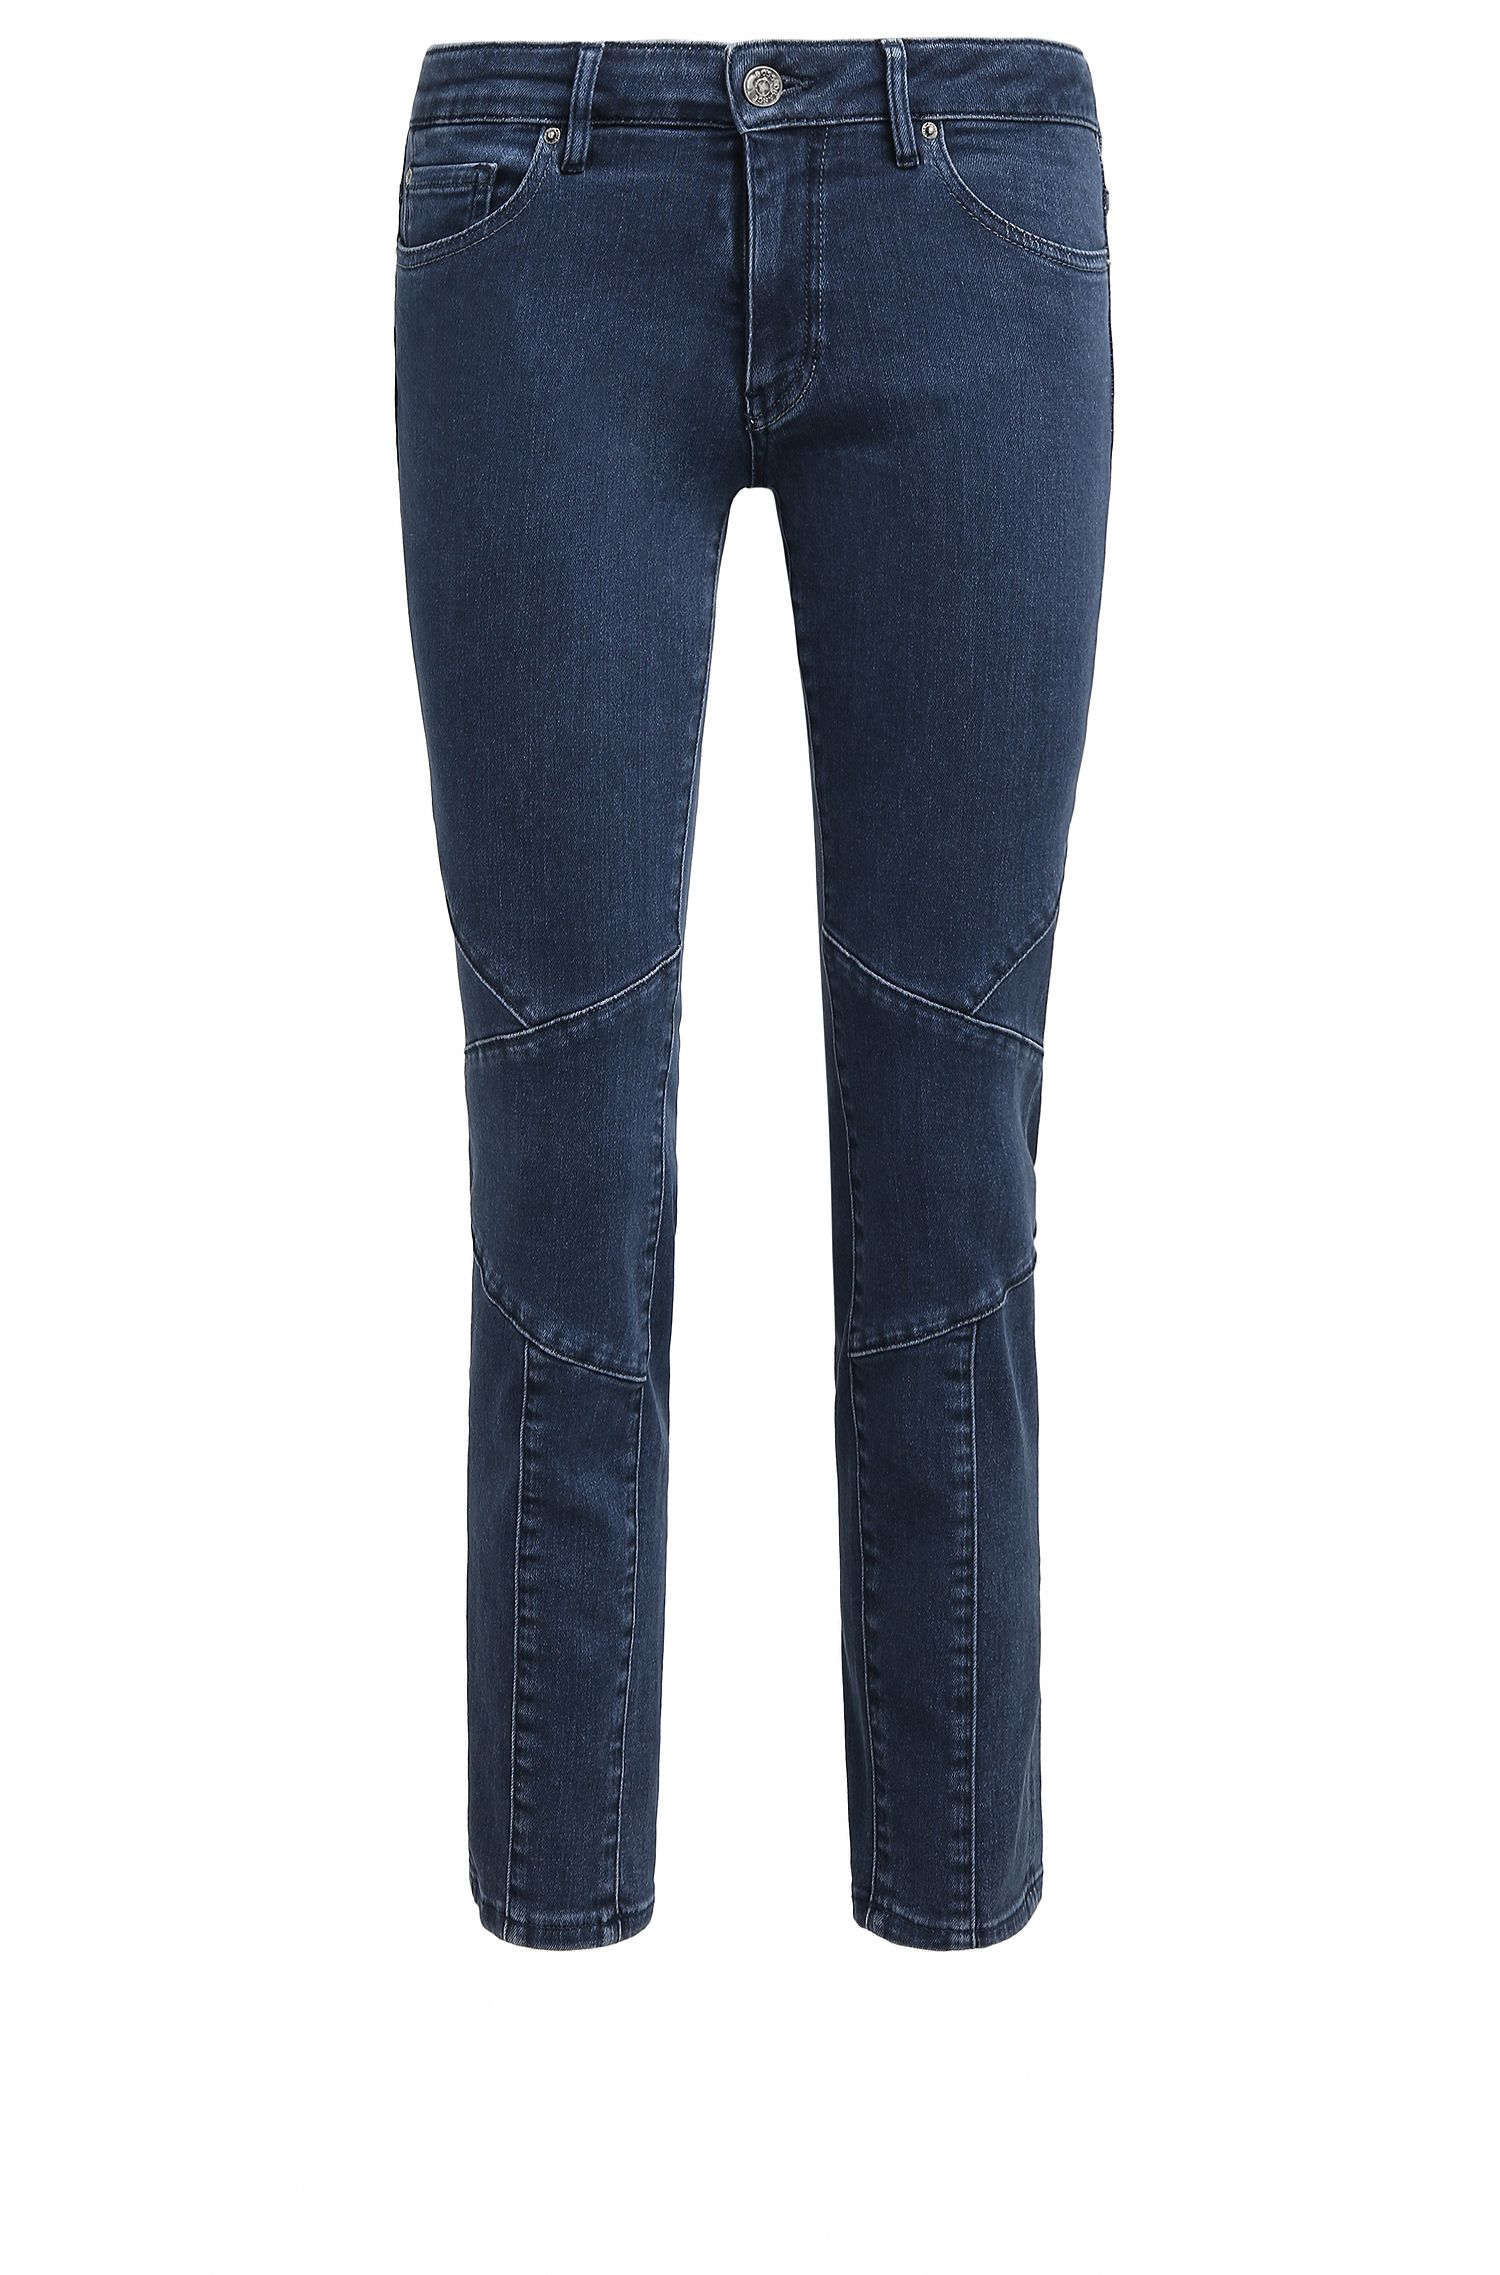 Jeans Slim Fit raccourci en denim power-stretch, au style biker